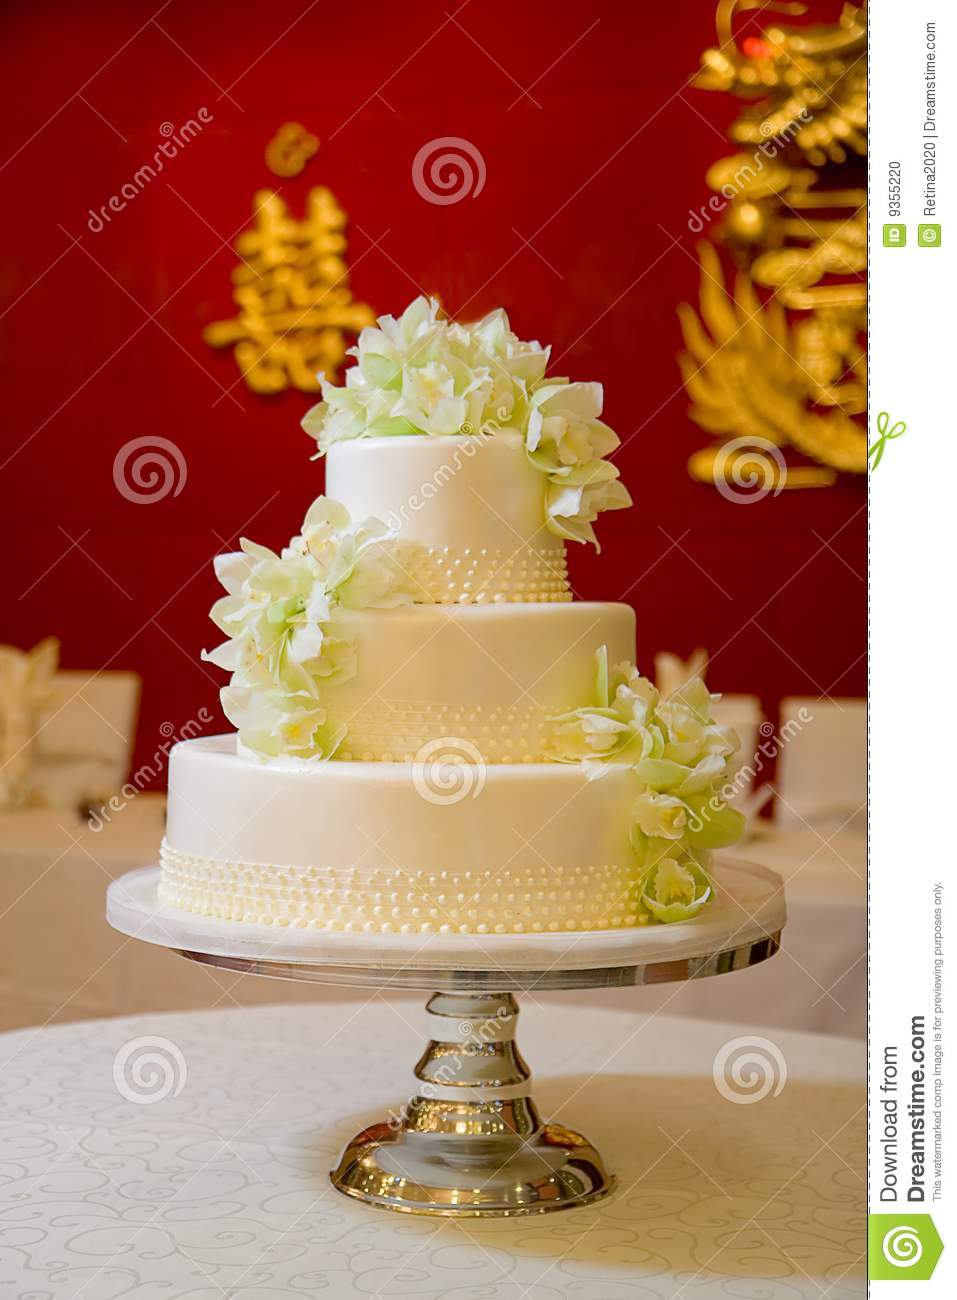 Wedding Cake with Orchids stock photo. Image of reception - 9355220